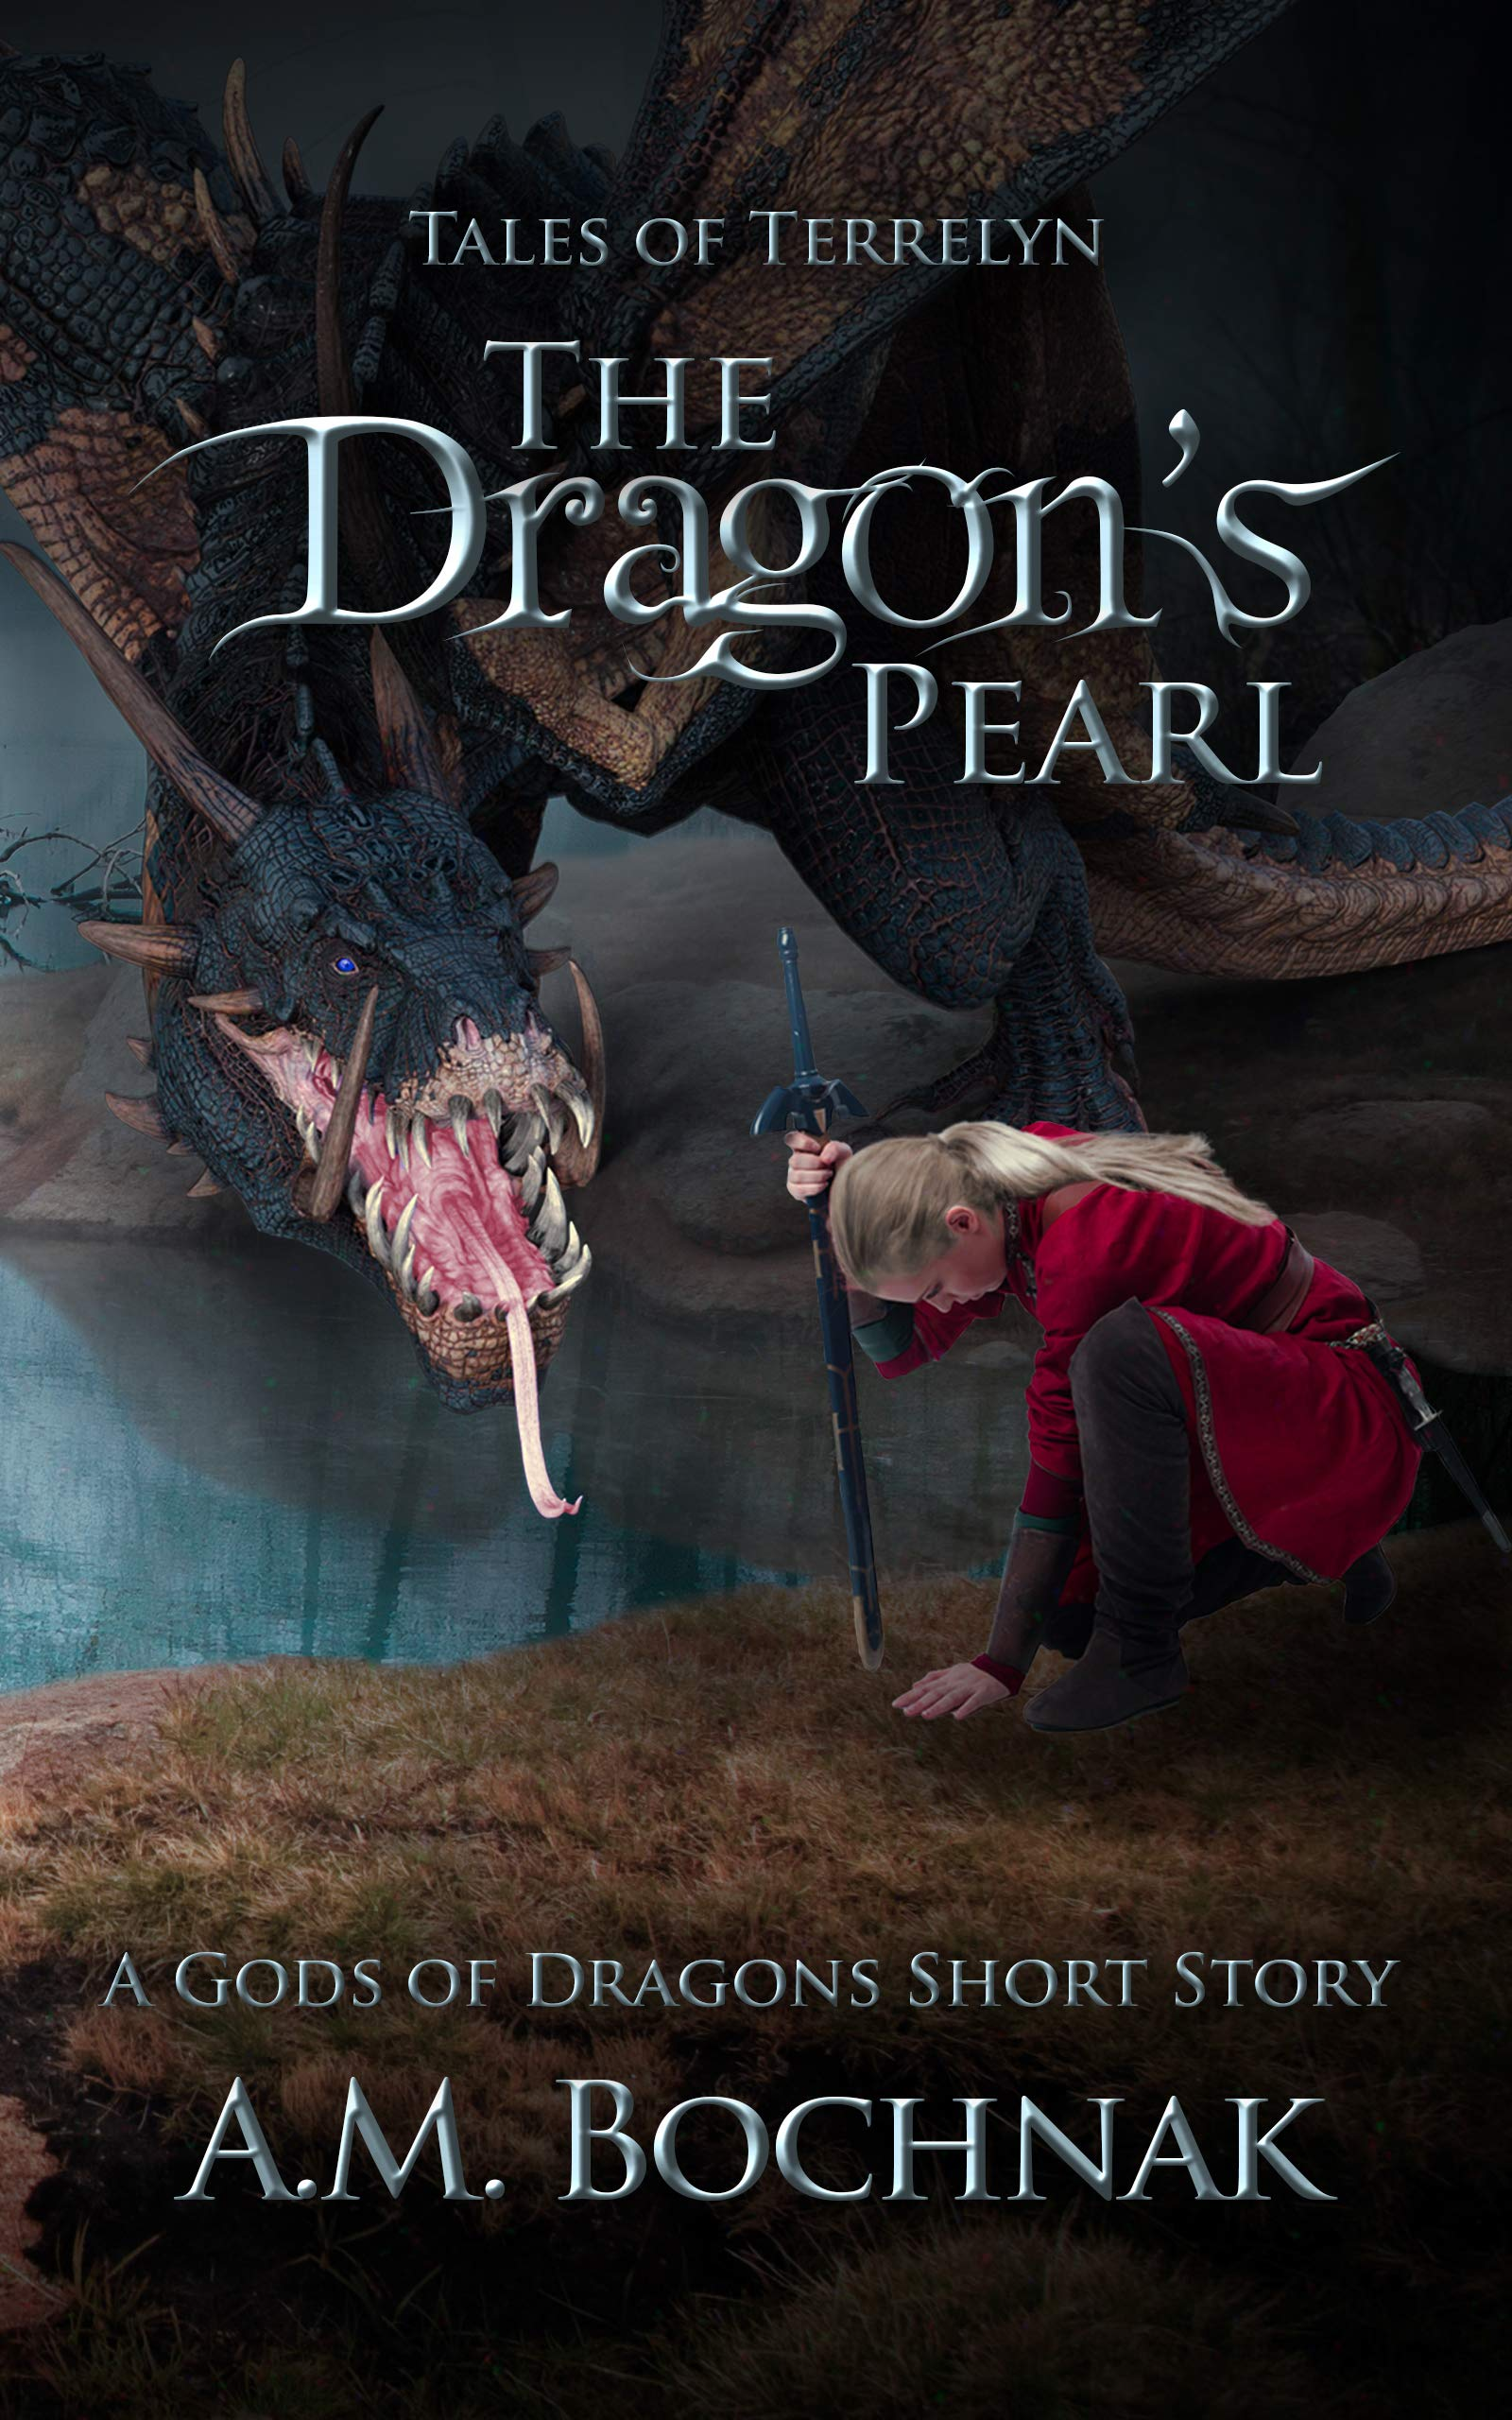 The Dragon's Pearl: A Gods of Dragons Short Story (Tales of Terrelyn Book 1)